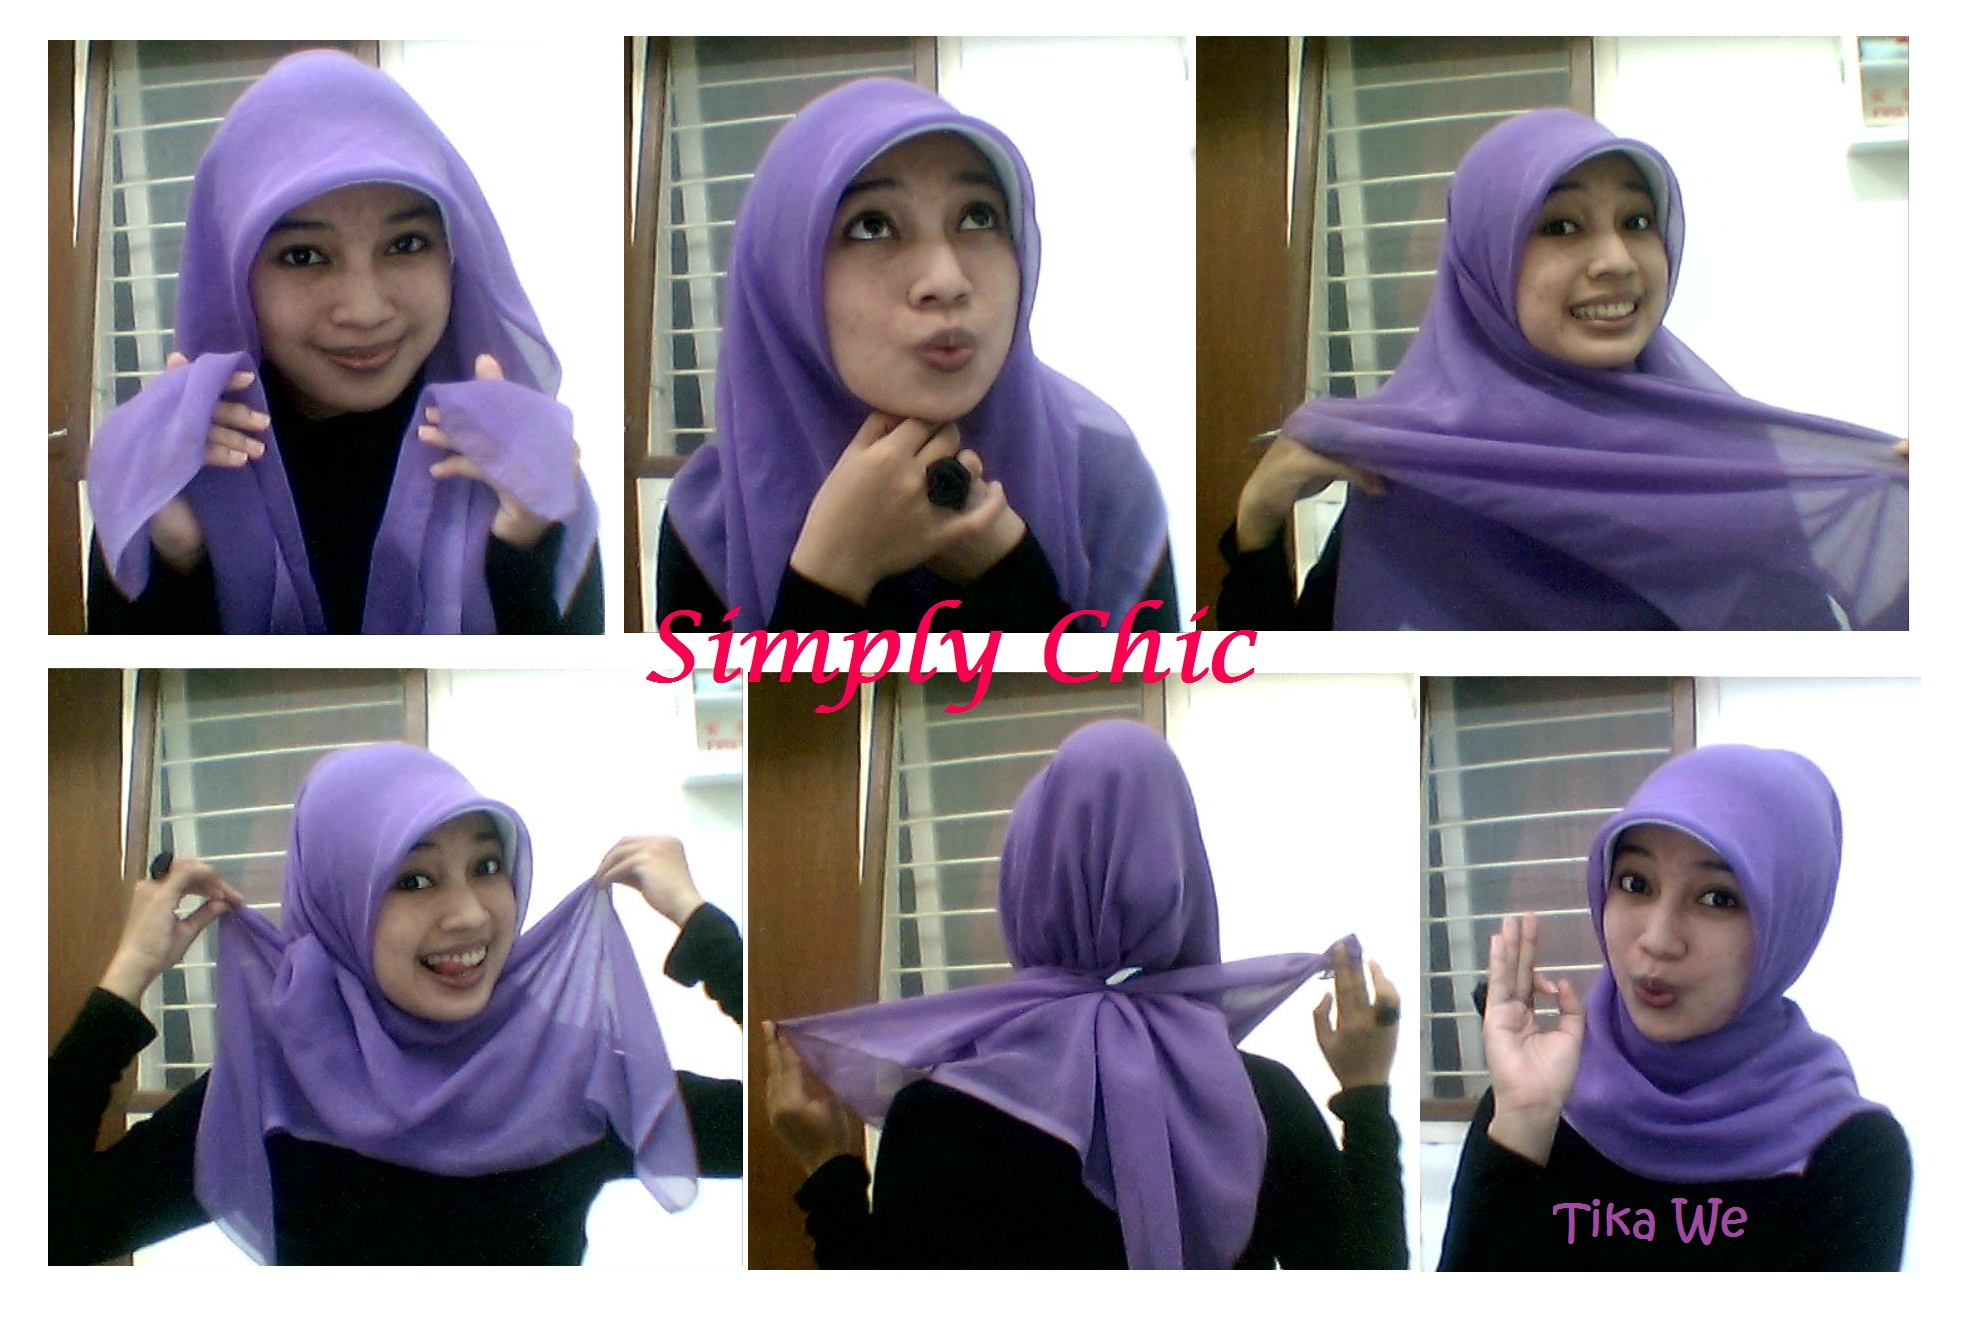 Tutorial Jilbab Paris 1 Wara Wiri Tika We